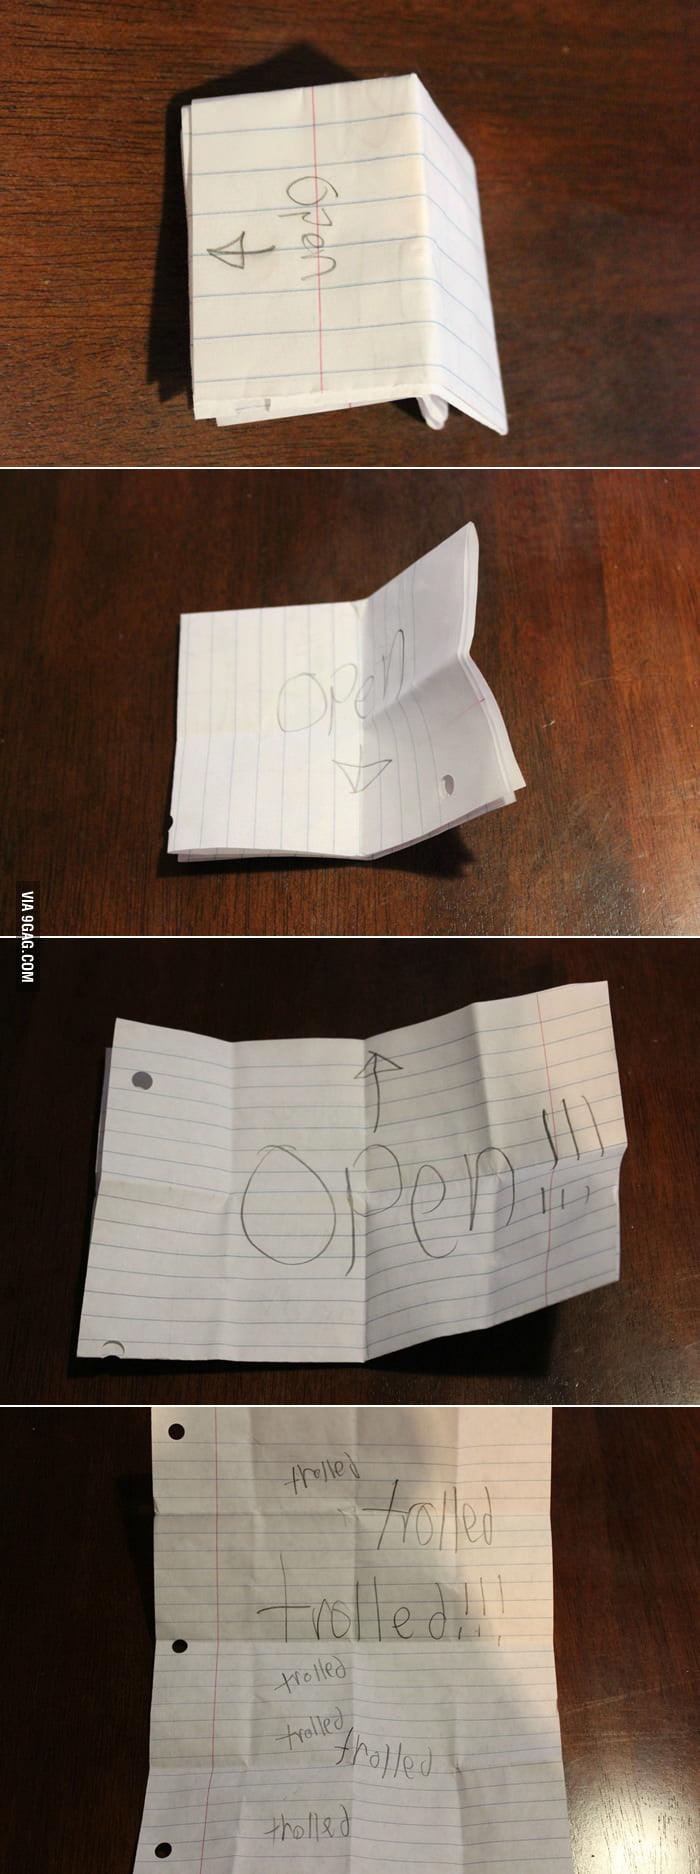 Caught my students deliberately passing a note in class.